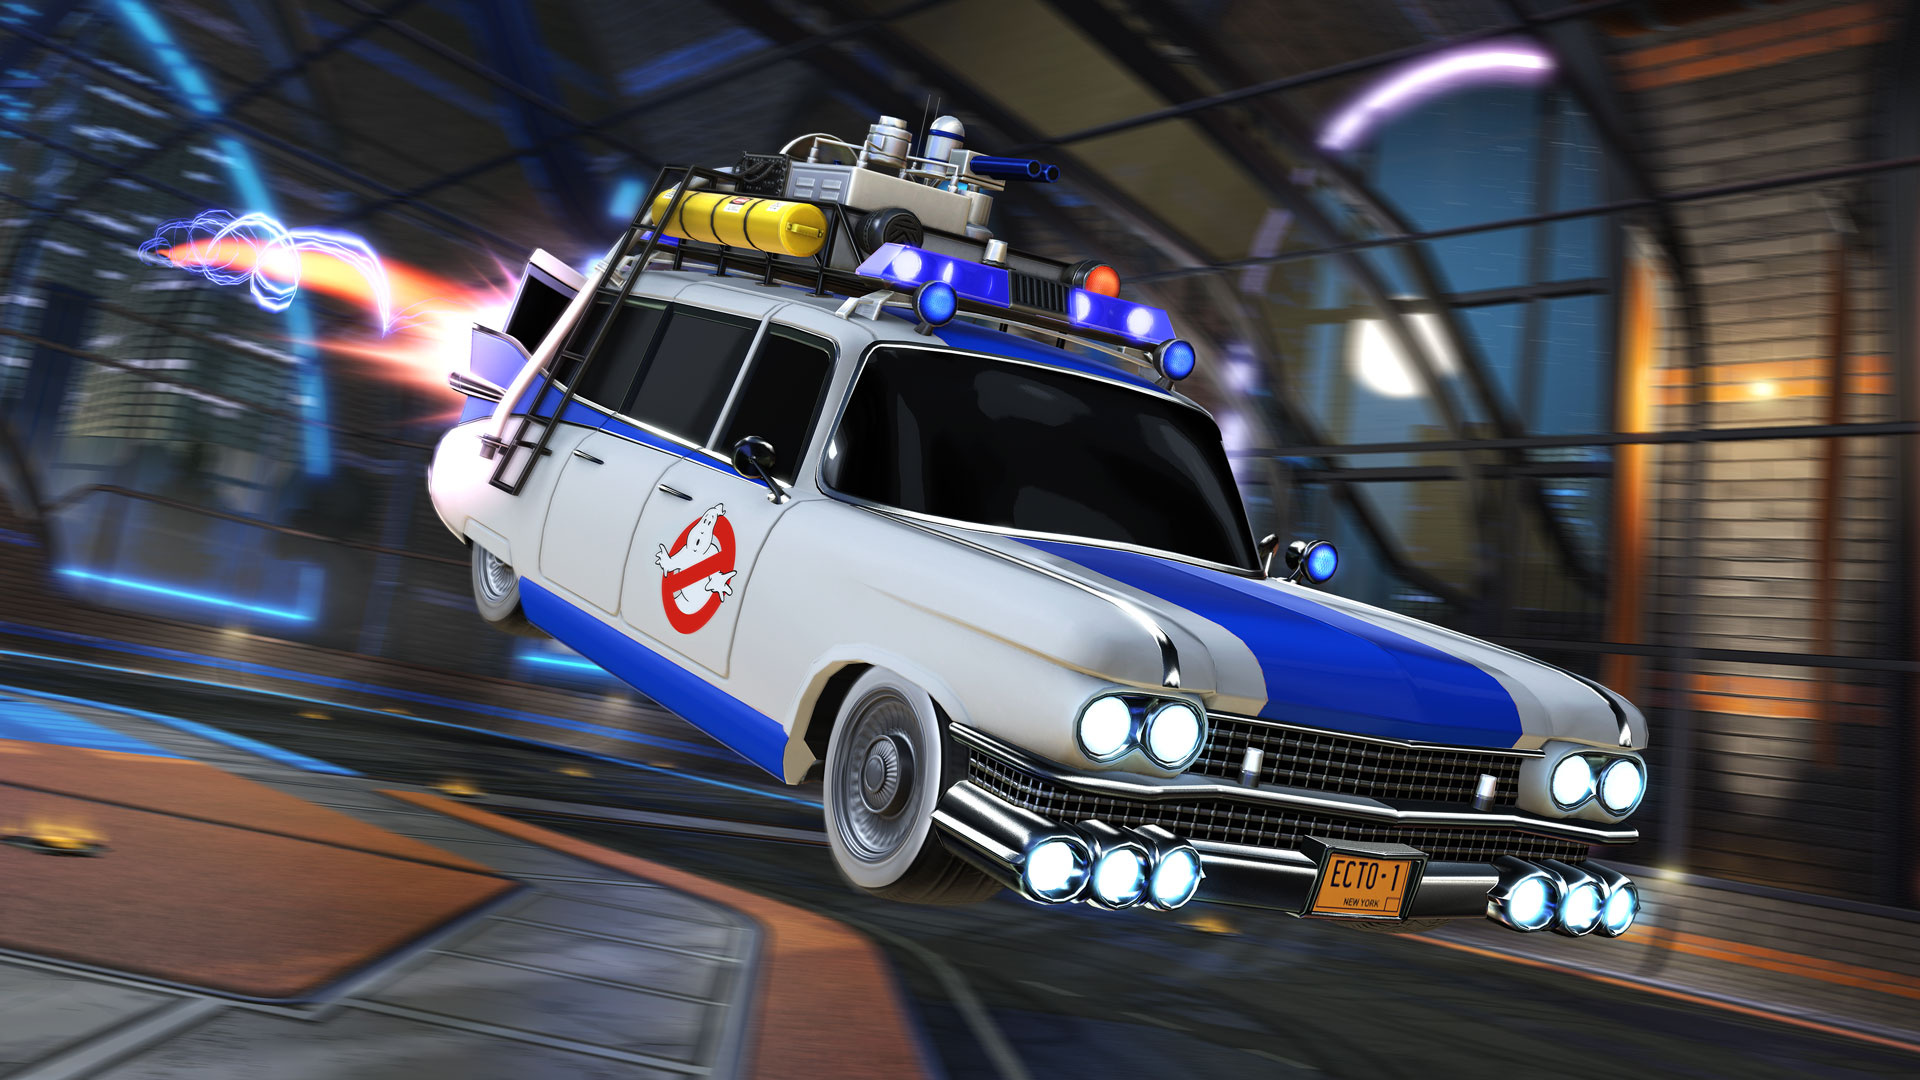 Rocket League's Radical Summer Event Brings 80s Themed Cars, Items, and Modes